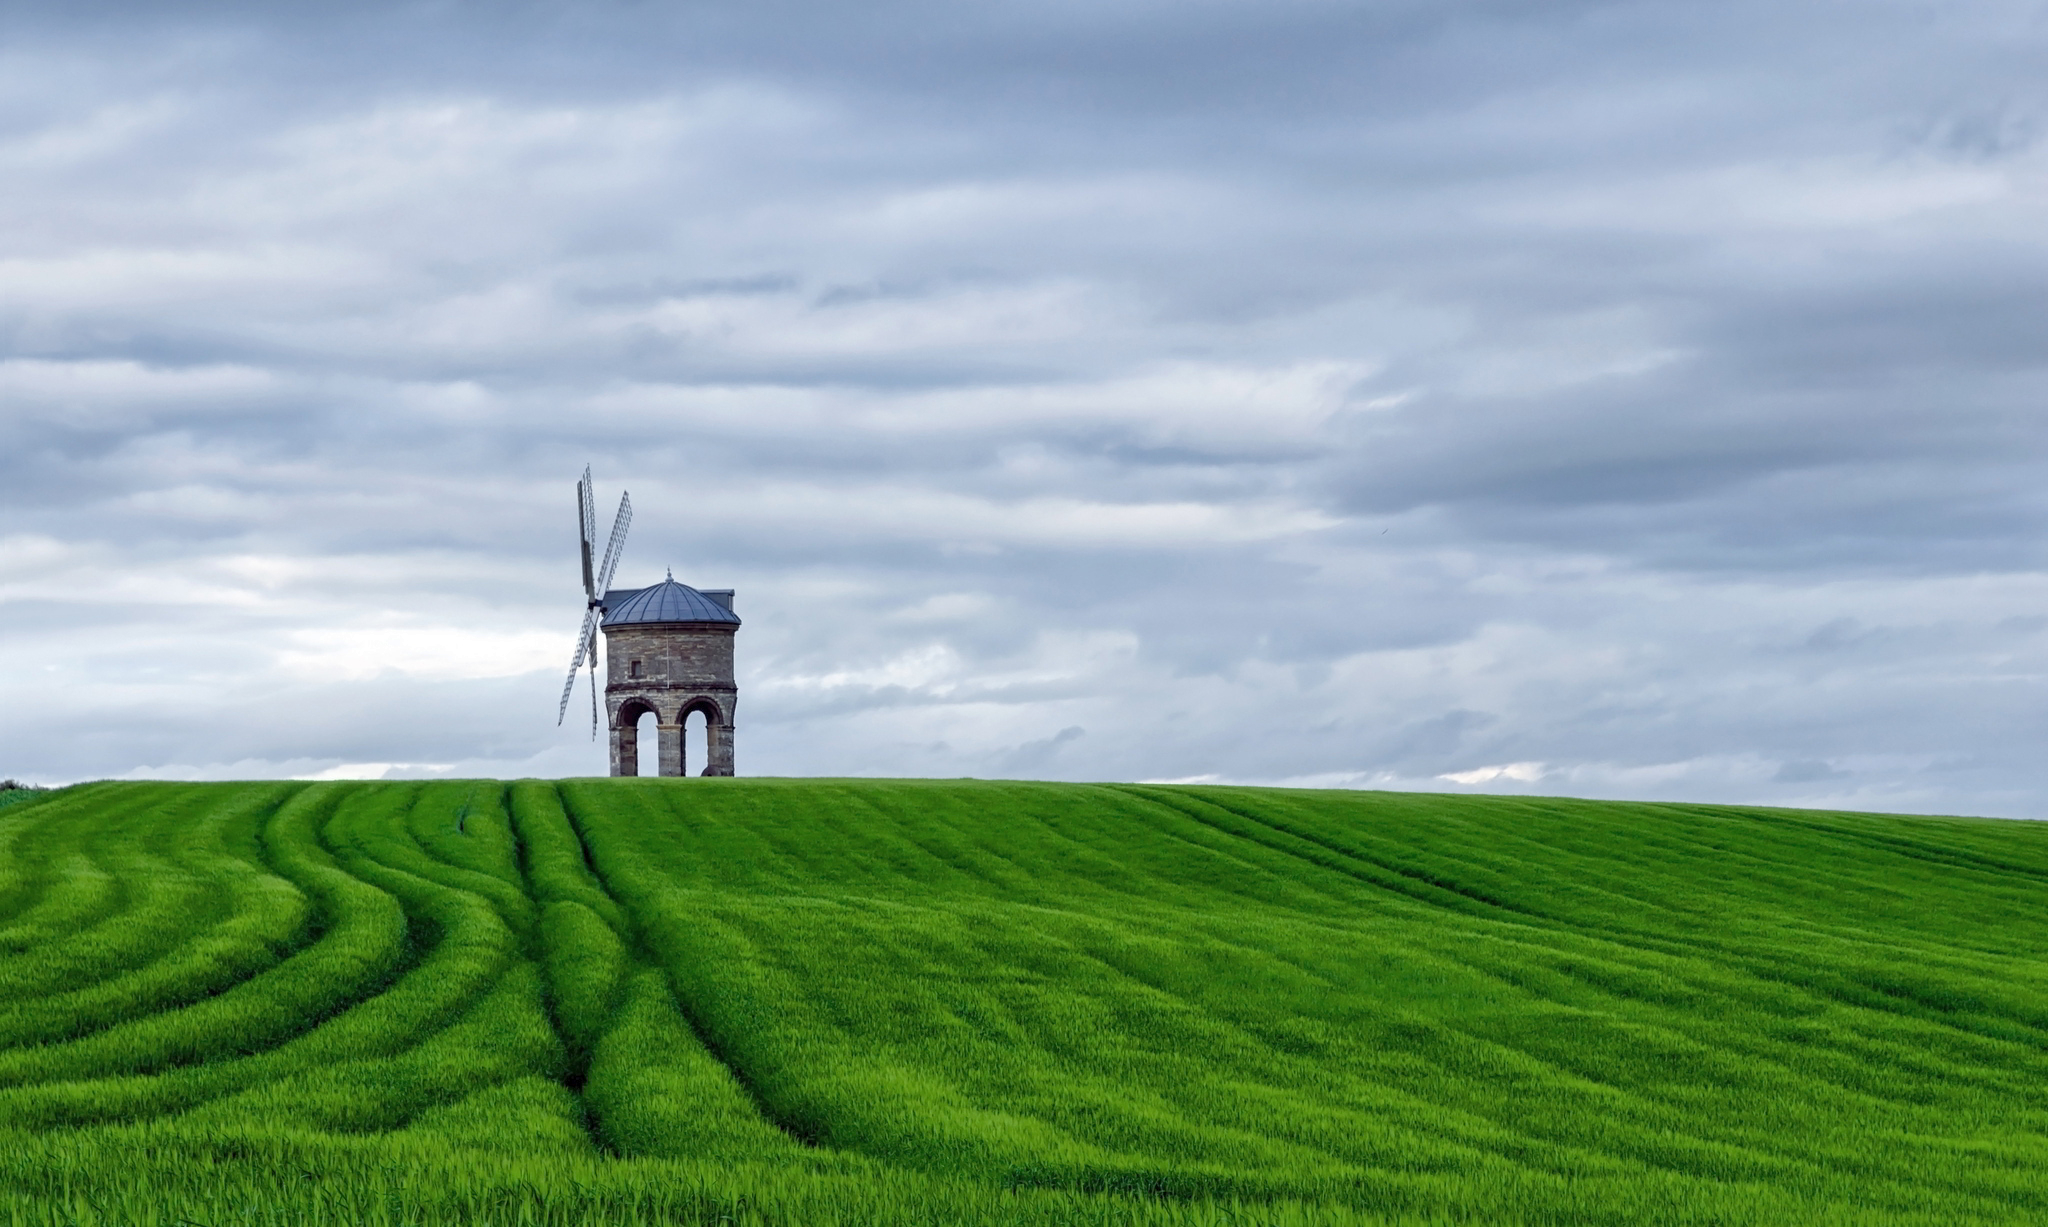 green windmill images